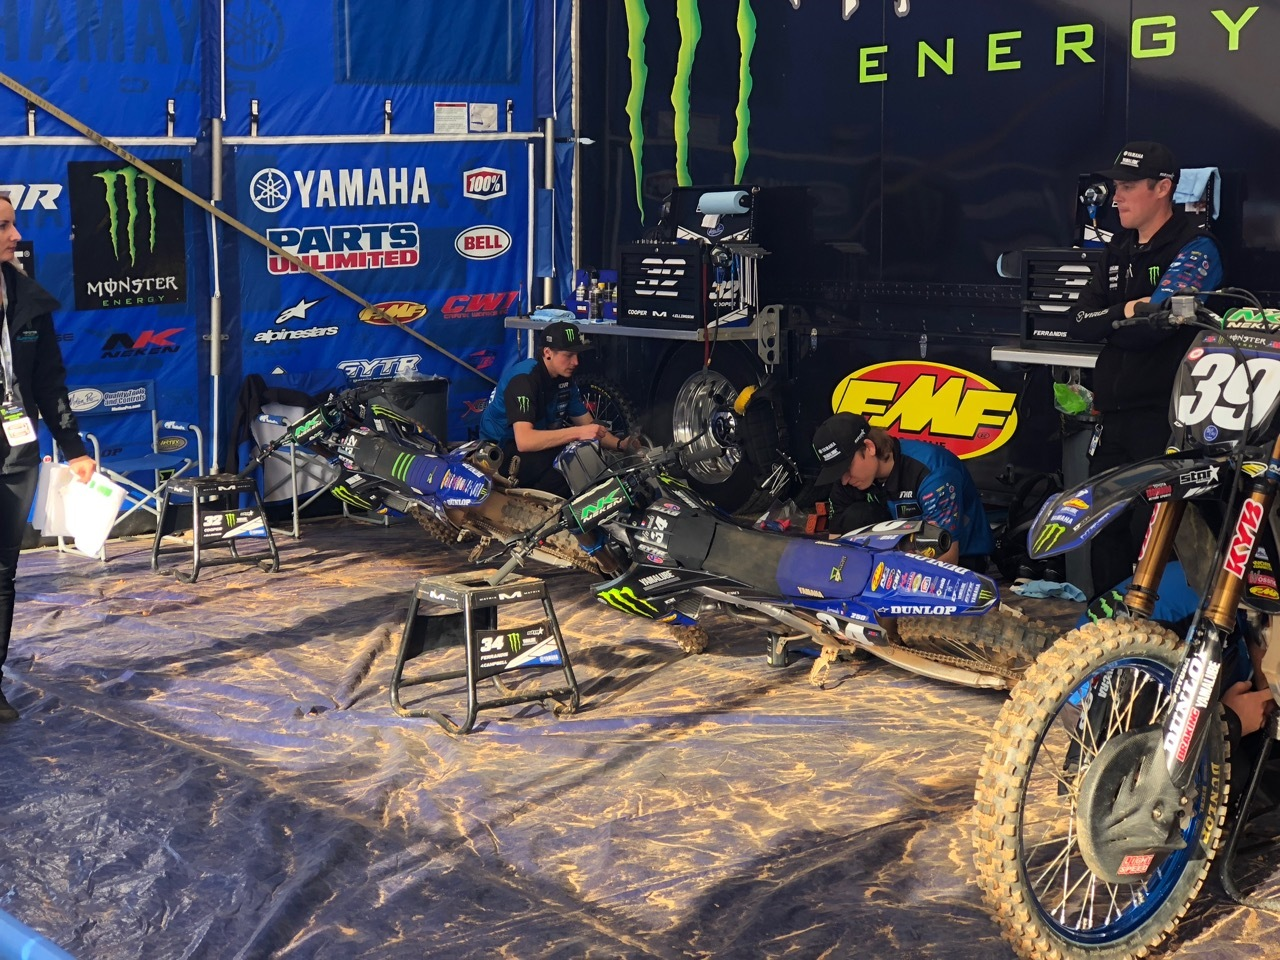 Supercross 2019 Atlanta - Yamaha 2